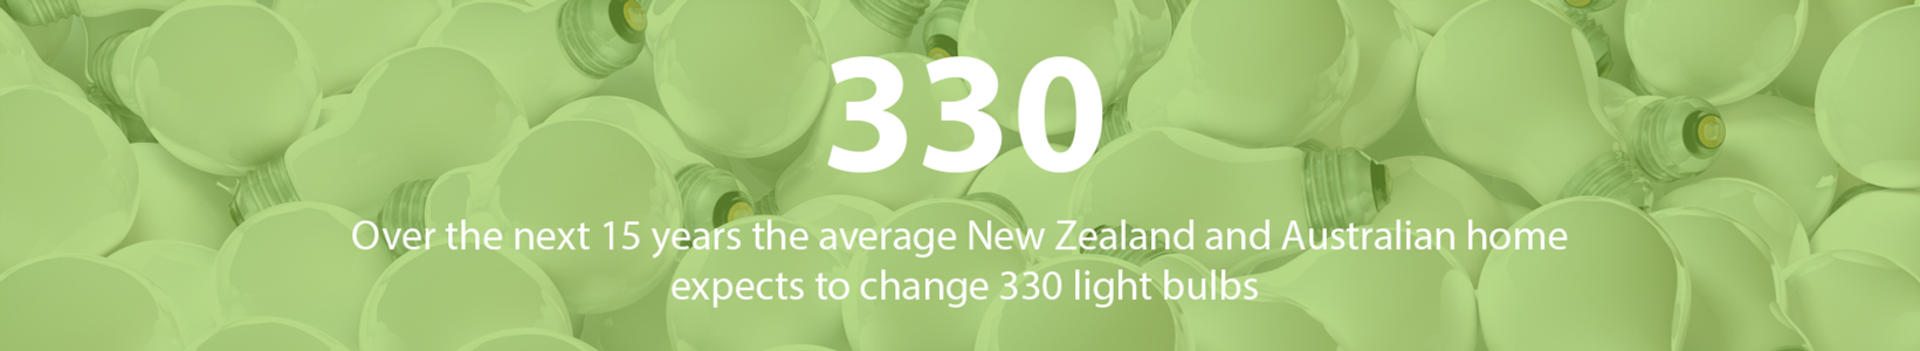 The average homes changes their bulbs 330 over a 15 year period, change to Ecobulb LEDs and save